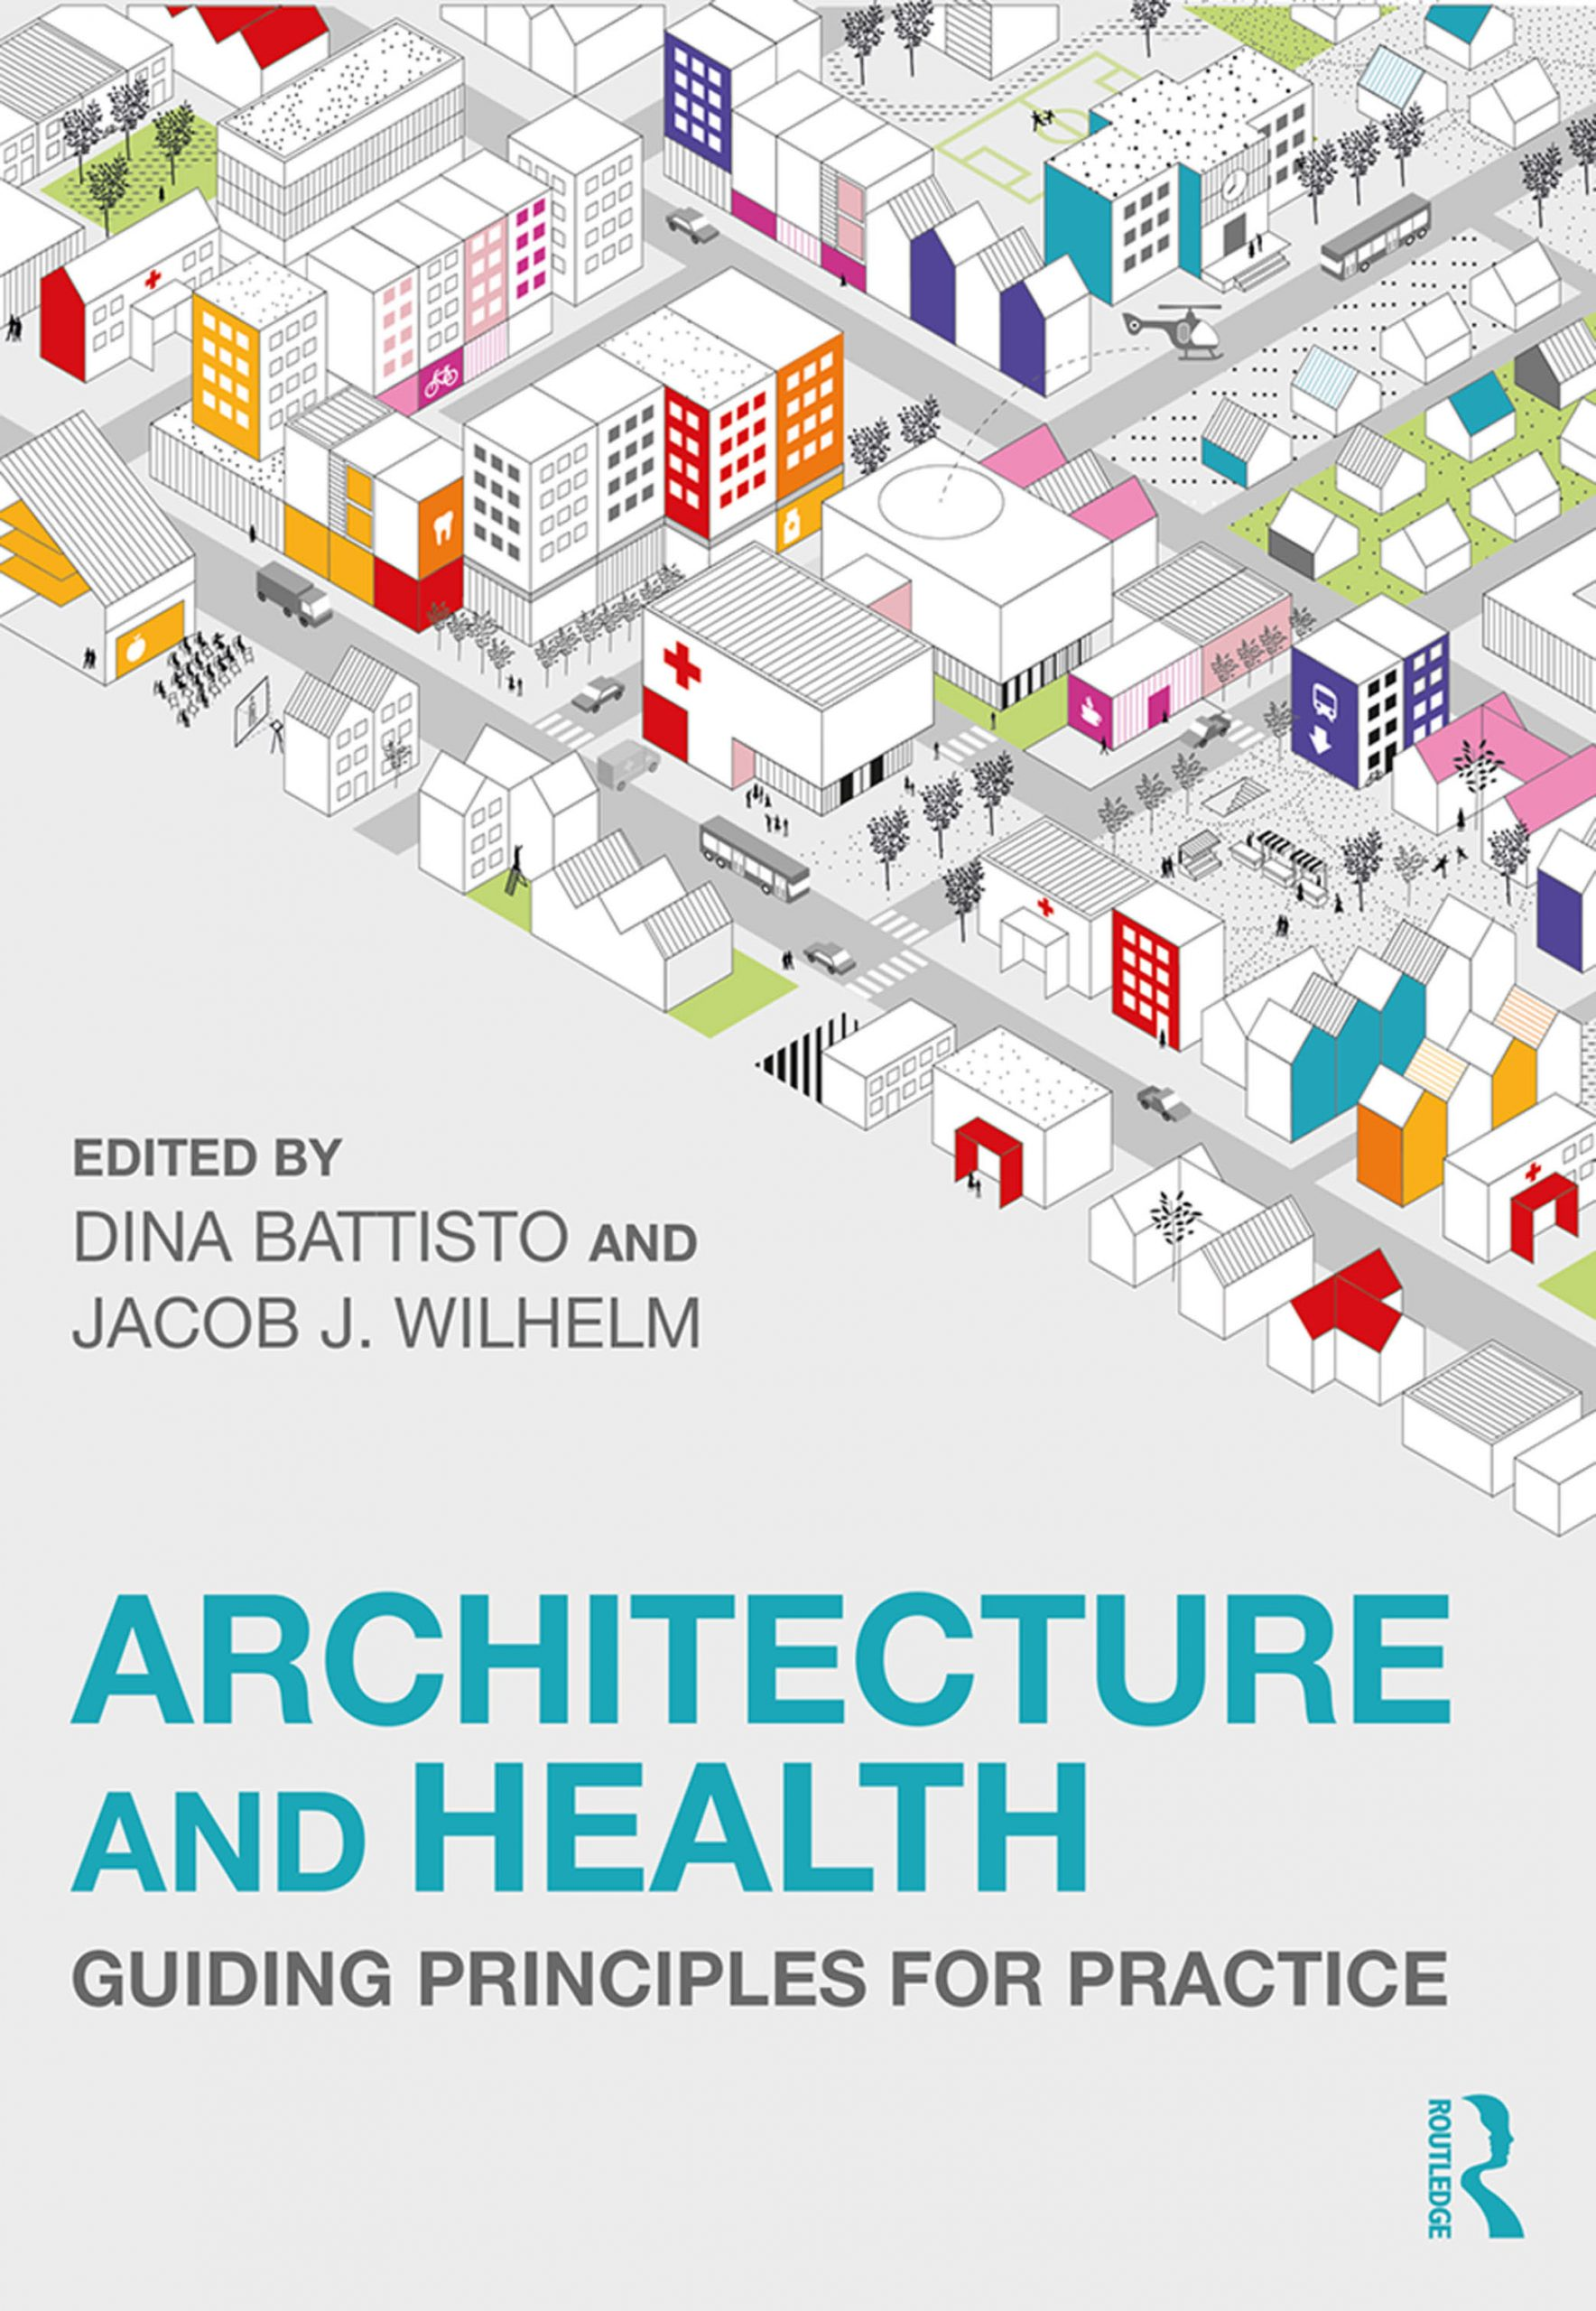 Architecture and Health Guiding Principles for Practice